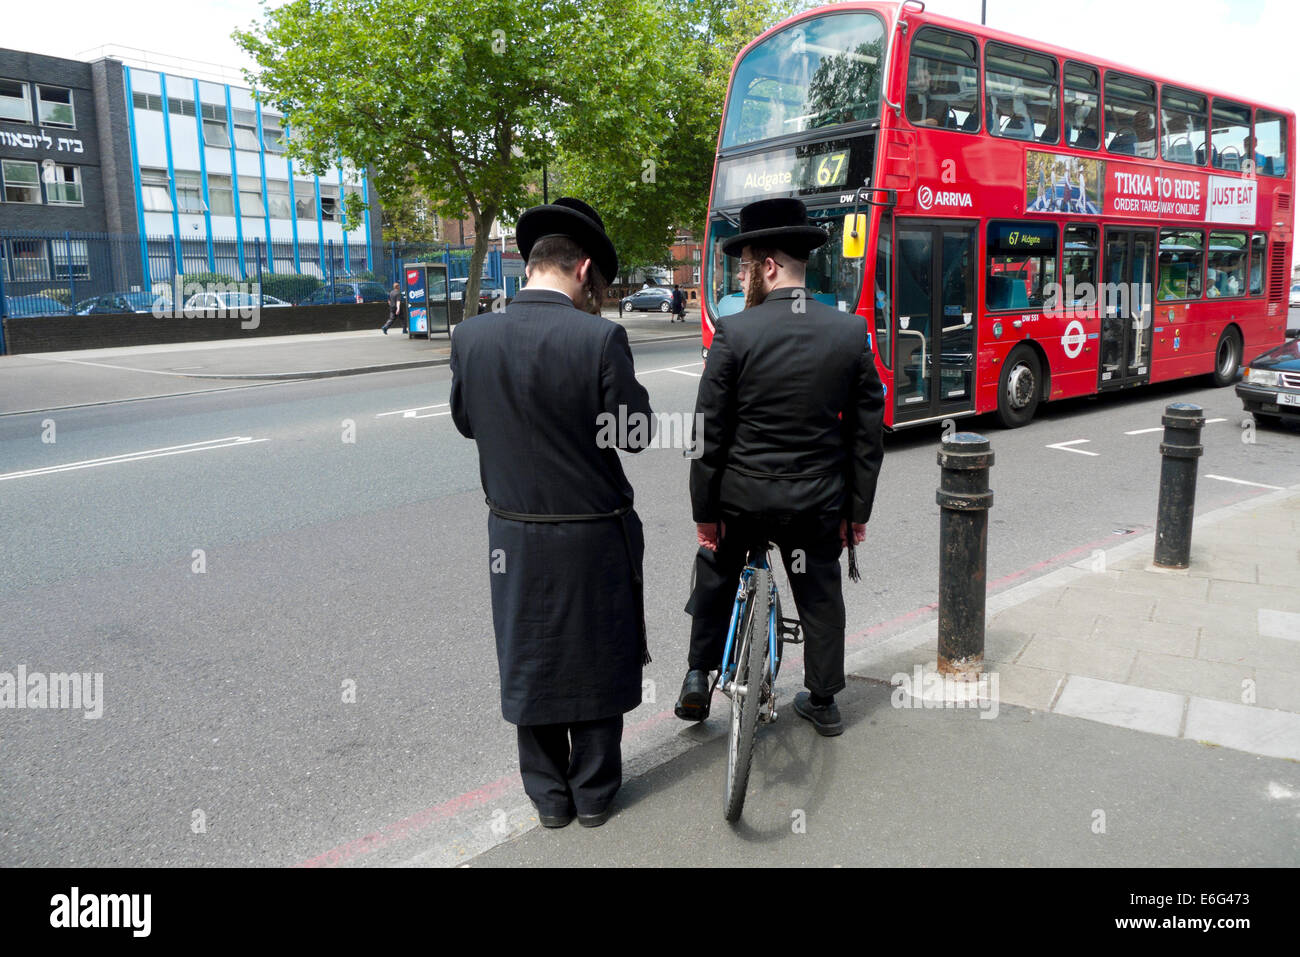 Young Orthodox Jewish men with bicycle wait for double-decker red bus traffic to cross road in Stamford Hill area - Stock Image